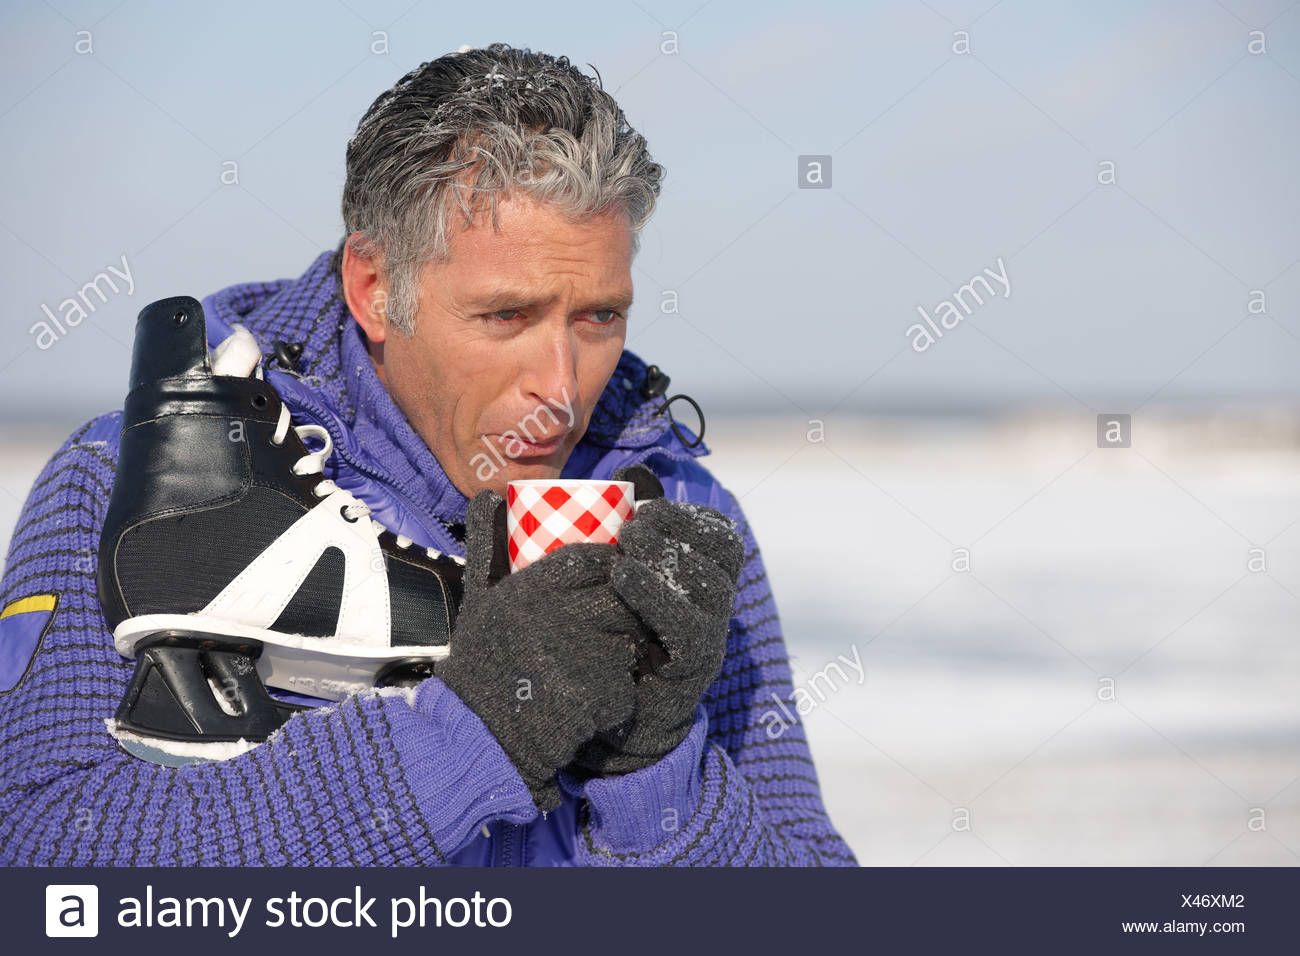 Mature man with ice skate drinking hot drink on winter day - Stock Image